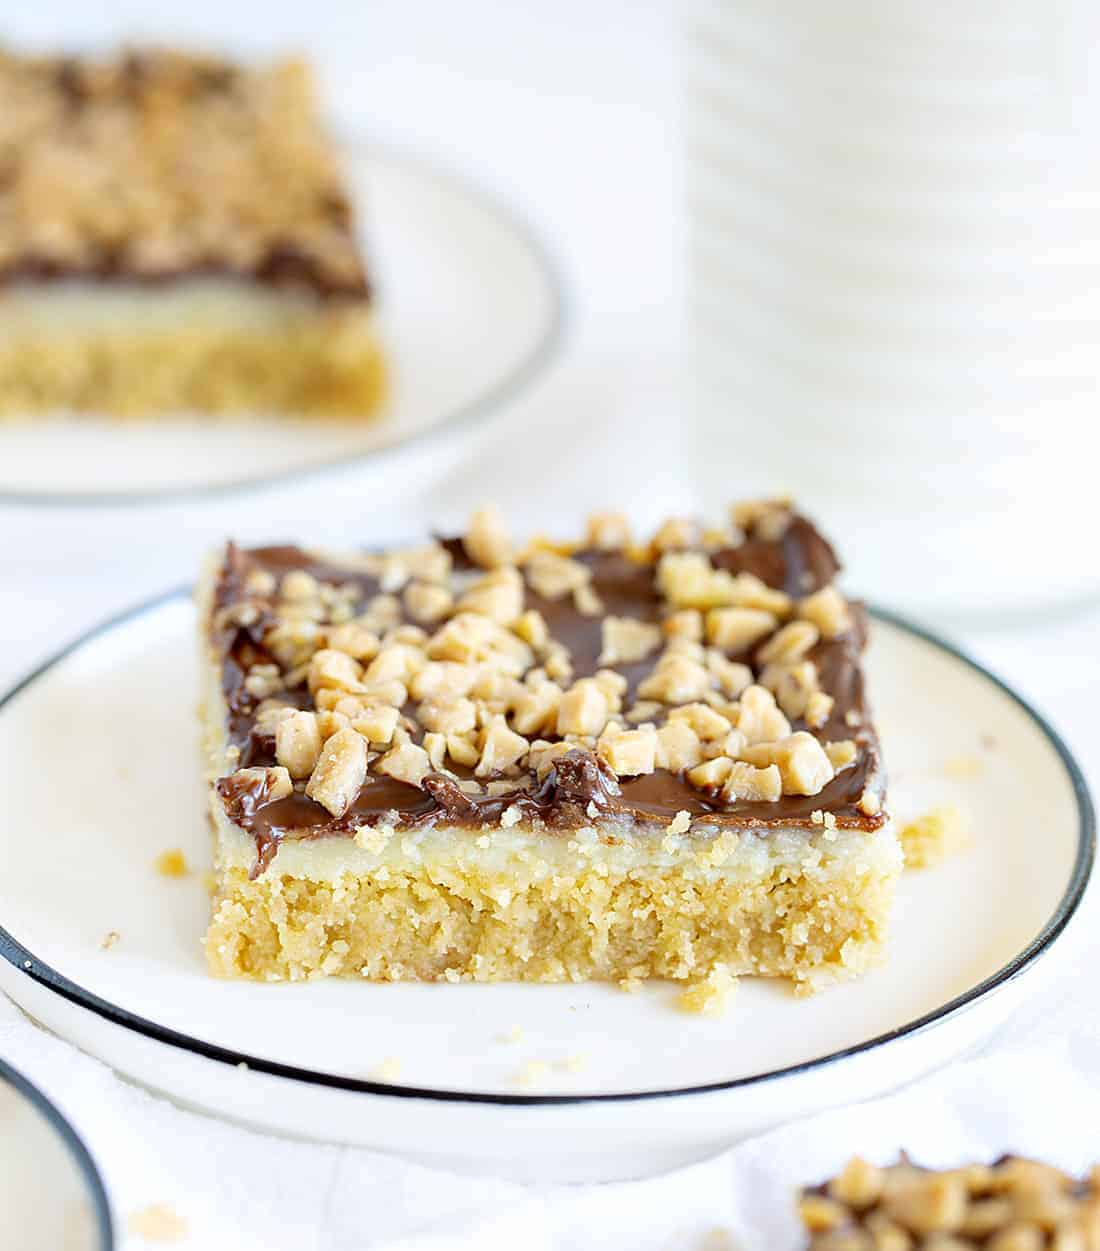 Piece of Chocolate Toffee Bars